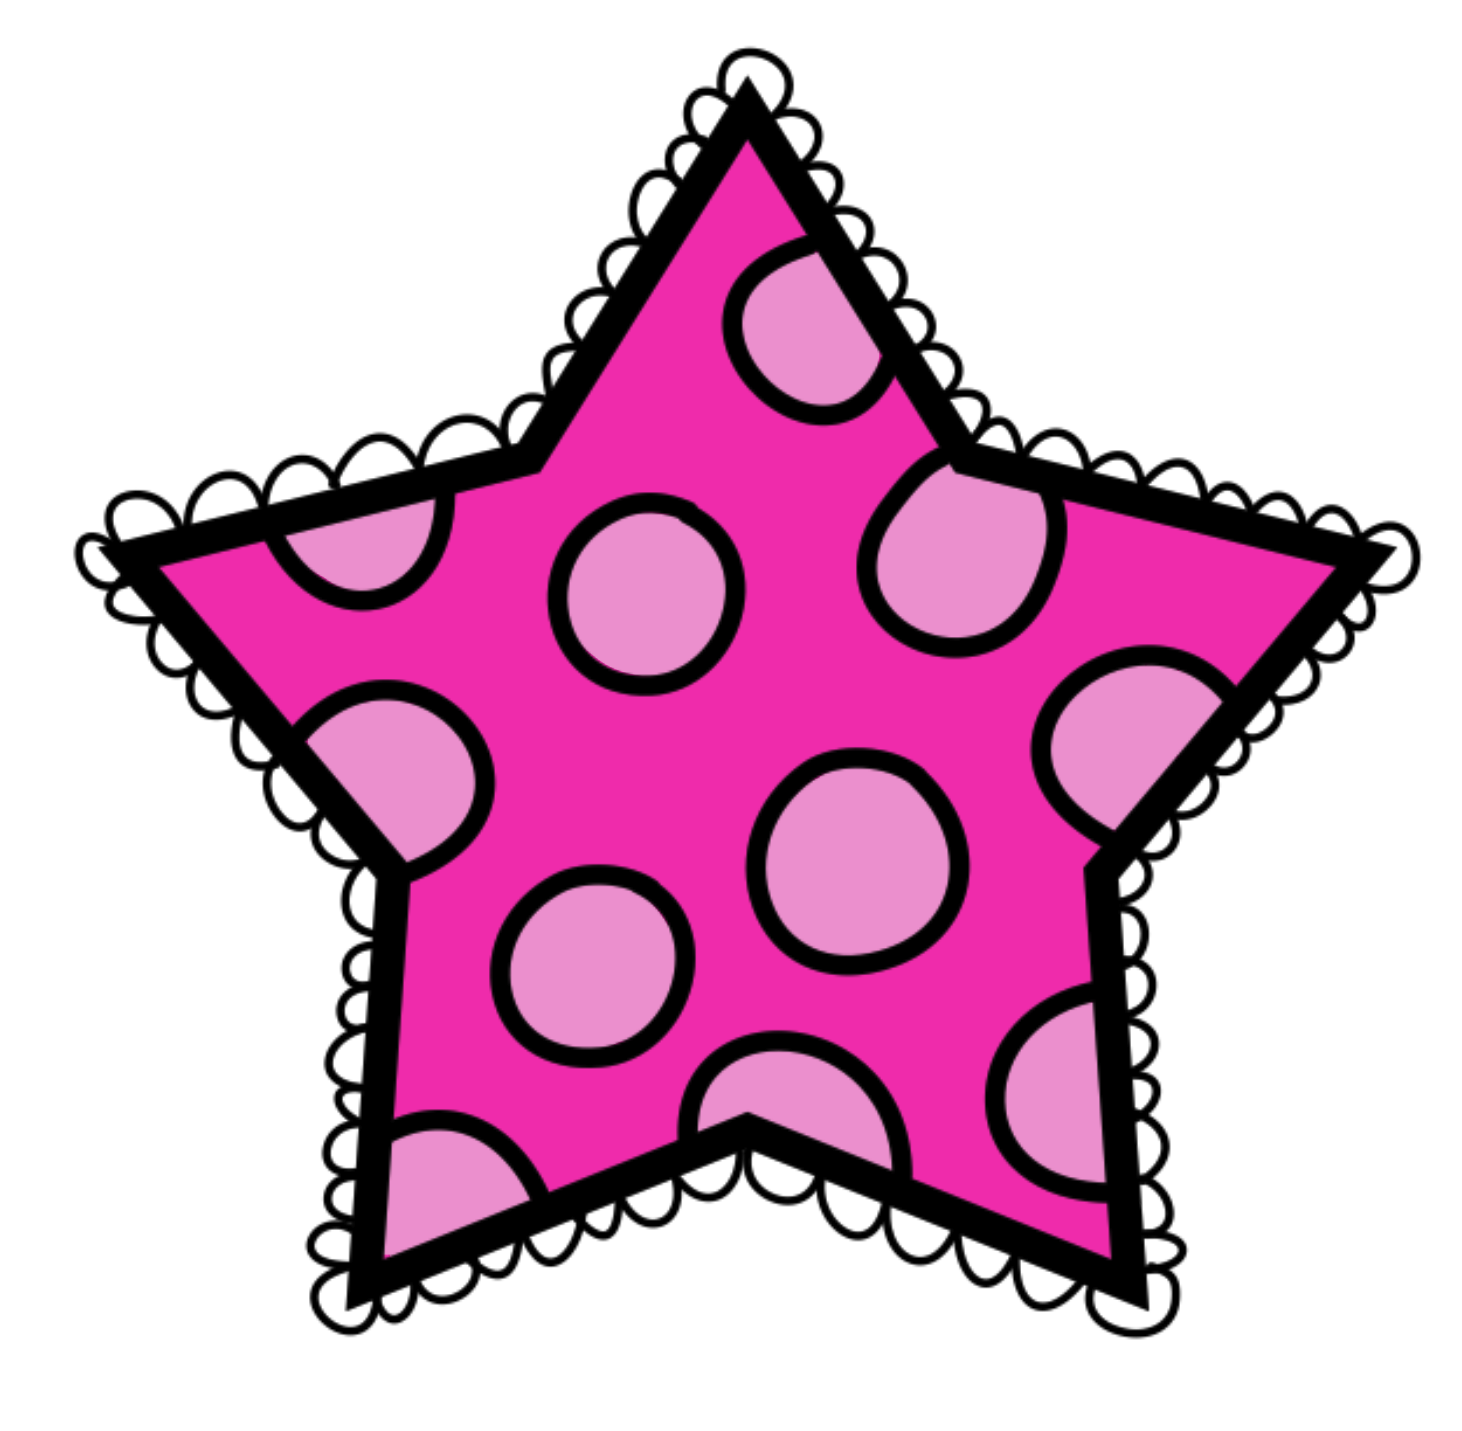 Melonheadz star clipart banner royalty free SHARING SUNDAY | Pinterest | Clip art, Clip art school and Clipart ... banner royalty free